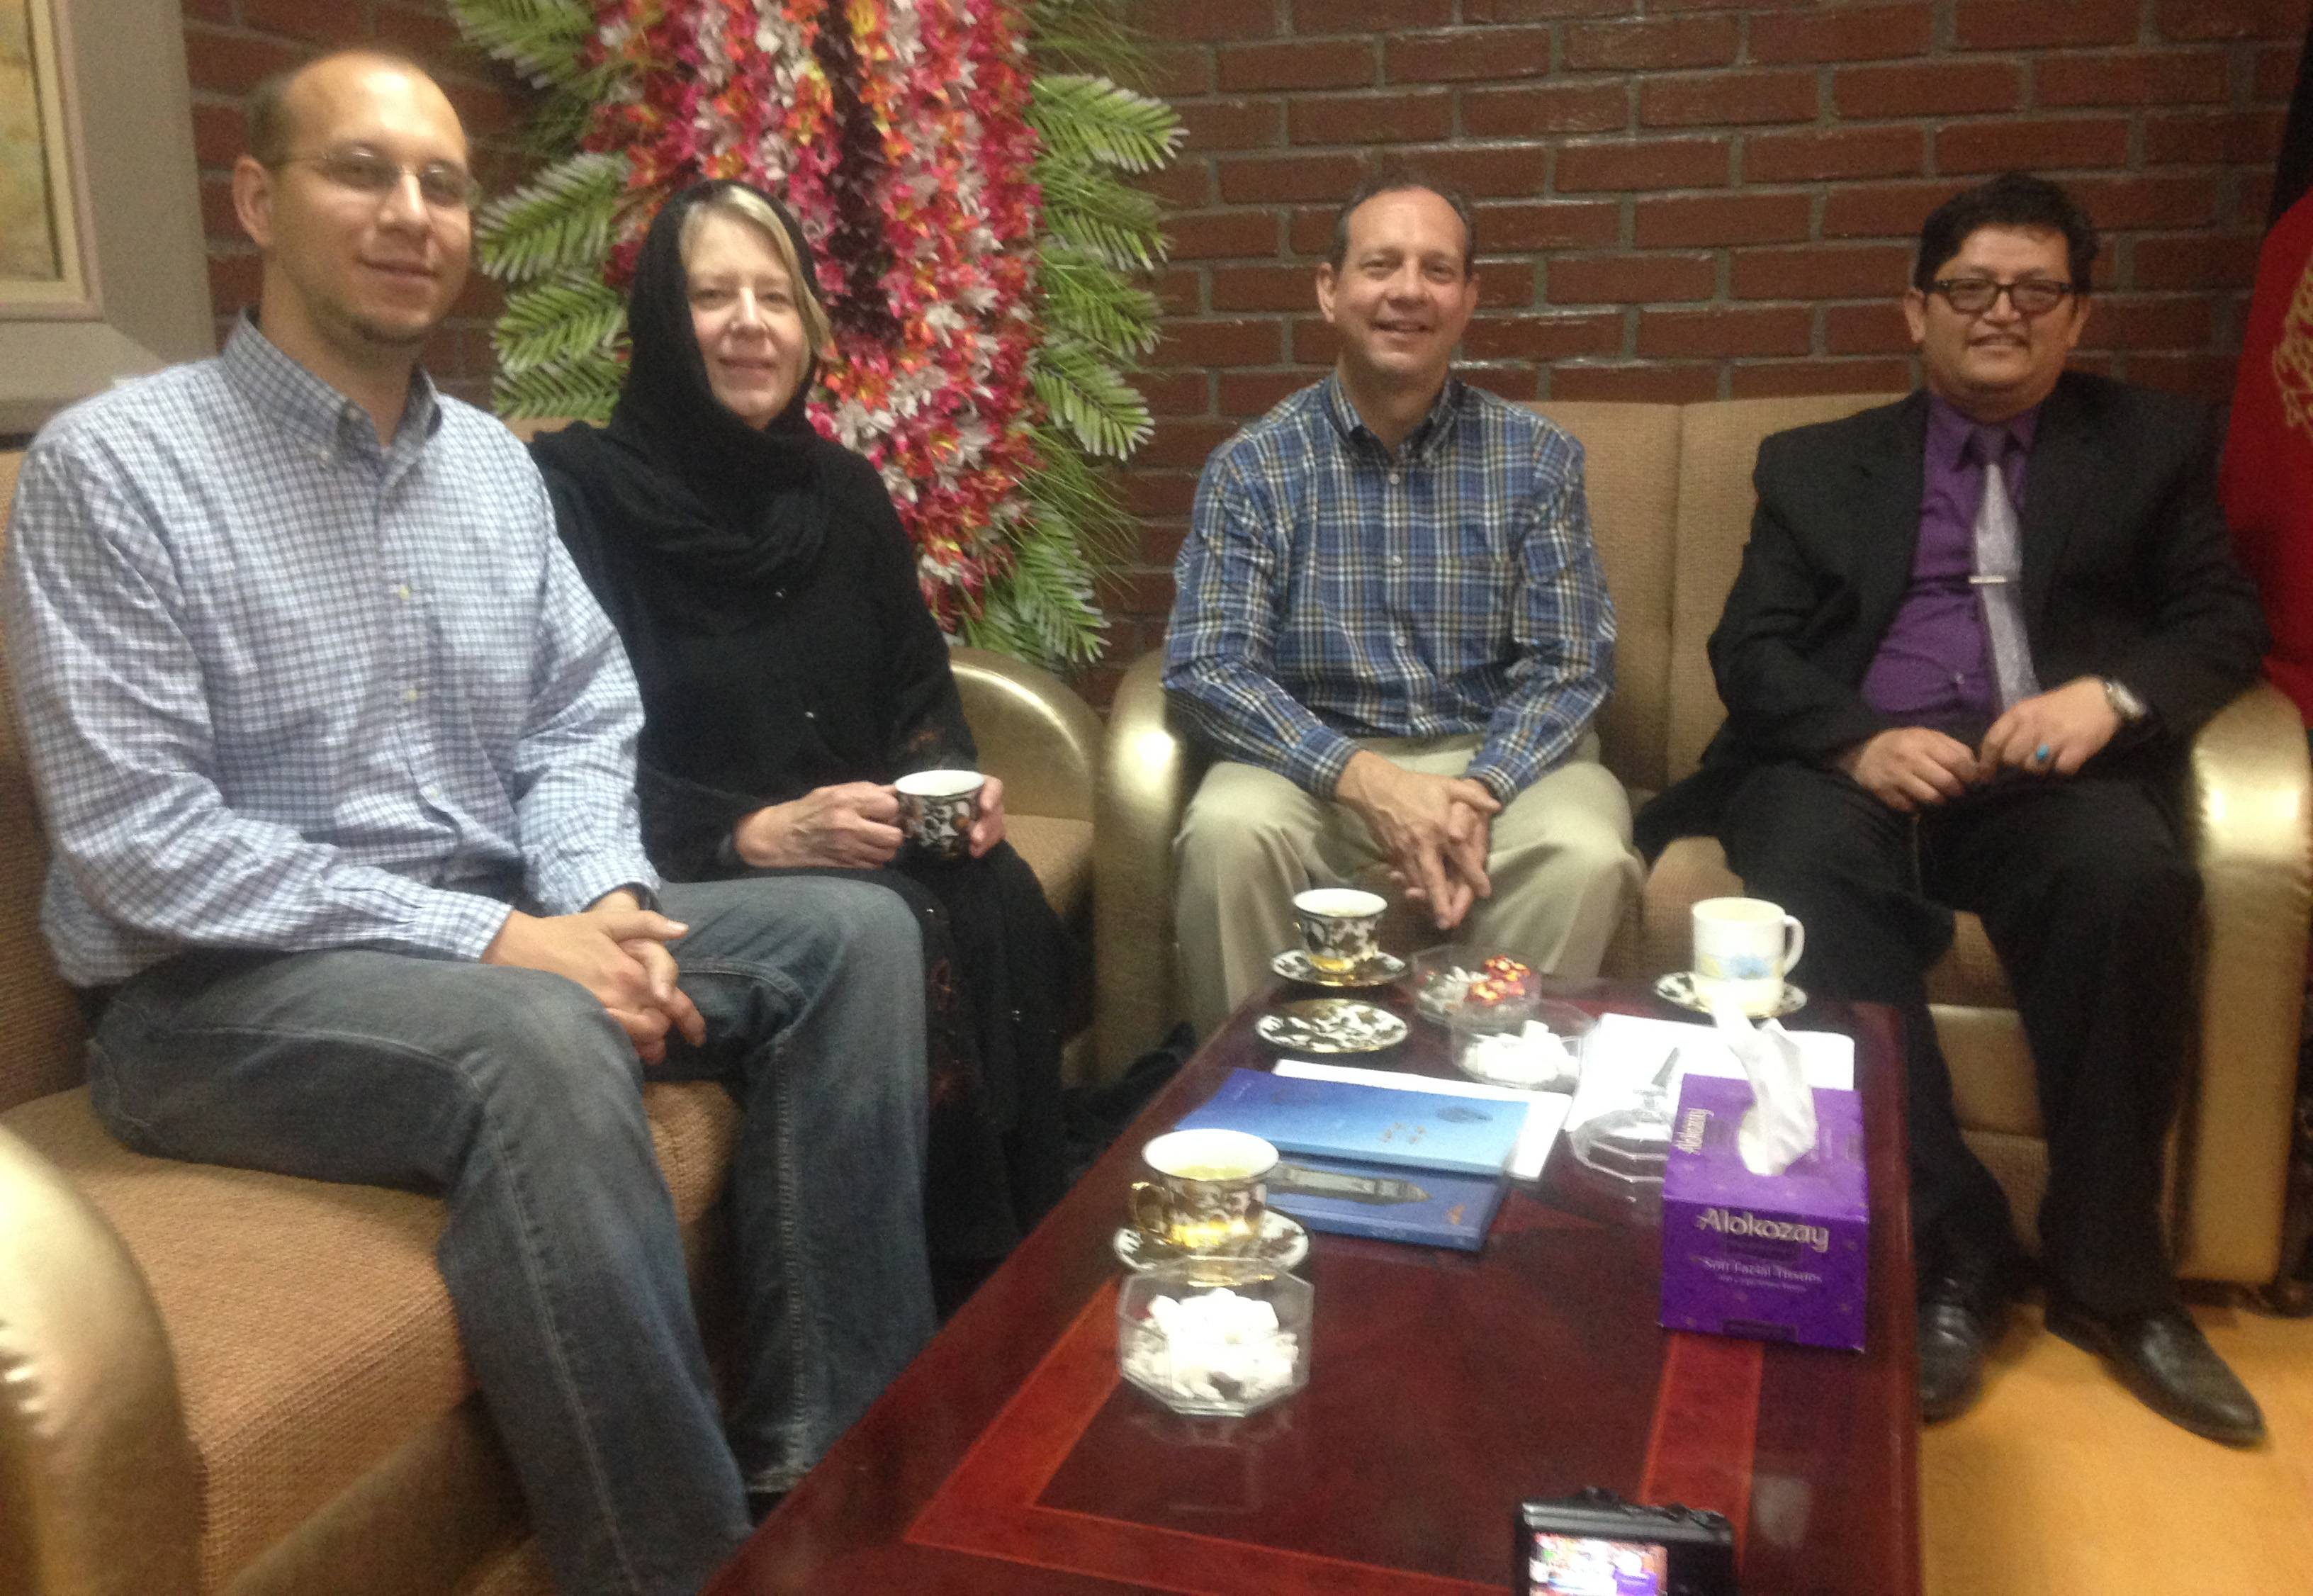 This photo taken on April 22 shows, from left, slain Palatine resident John Gabel, his wife, Teresa, and his father, Gary Gabel, sitting with Mohammad Hadi Hedayati, Kabul University's vice chancellor, at Kabul University in Kabul, Afghanistan.